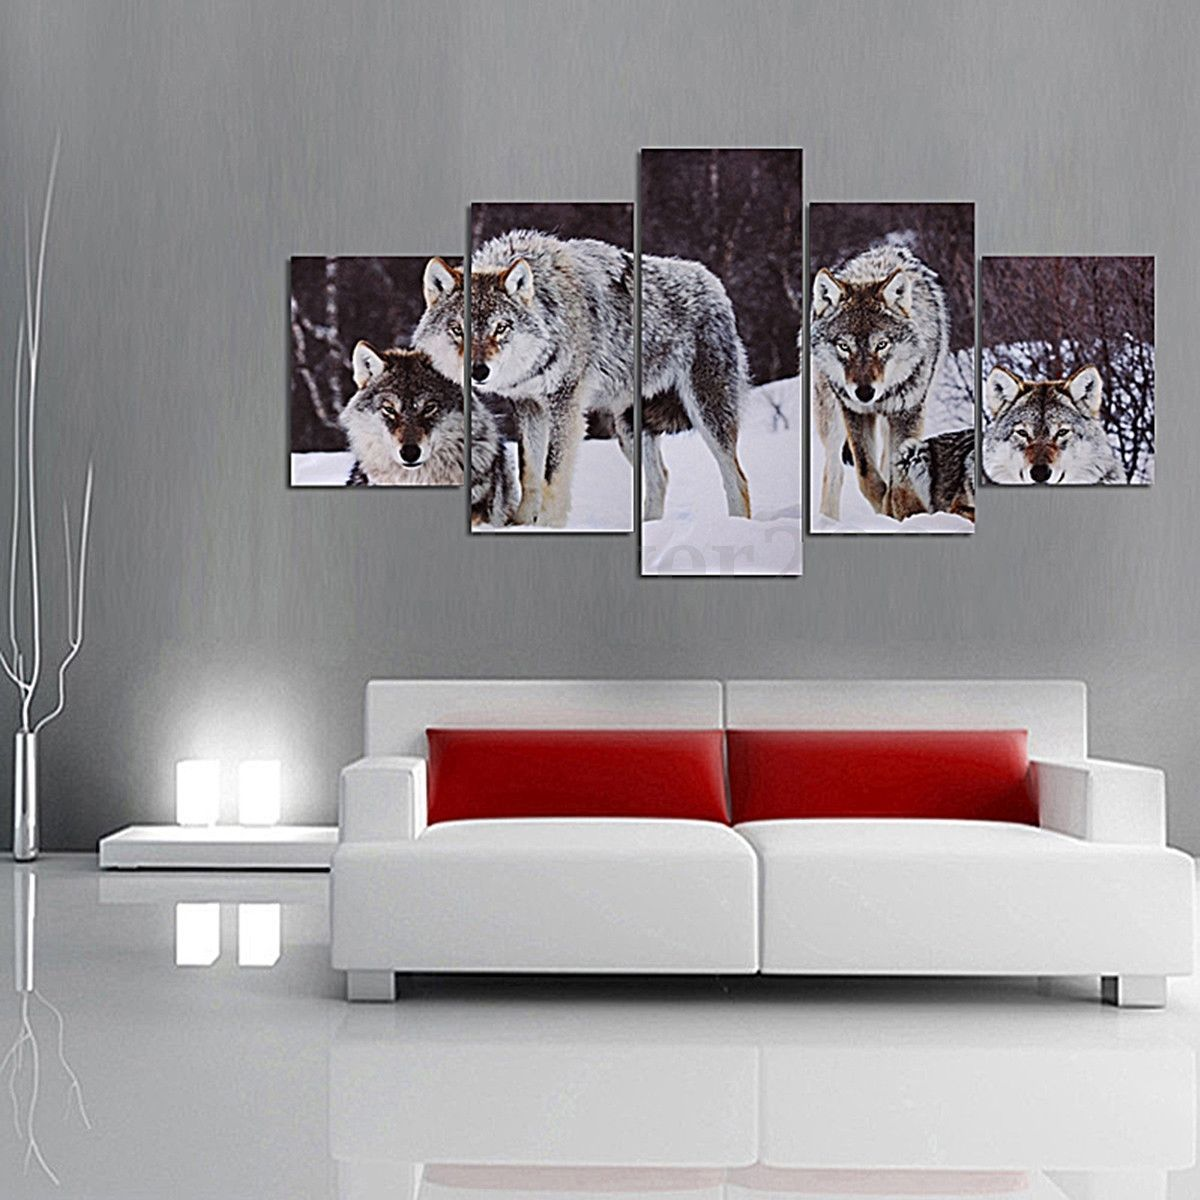 Pcs wolf snowfield canvas picture modern art unframed painting home